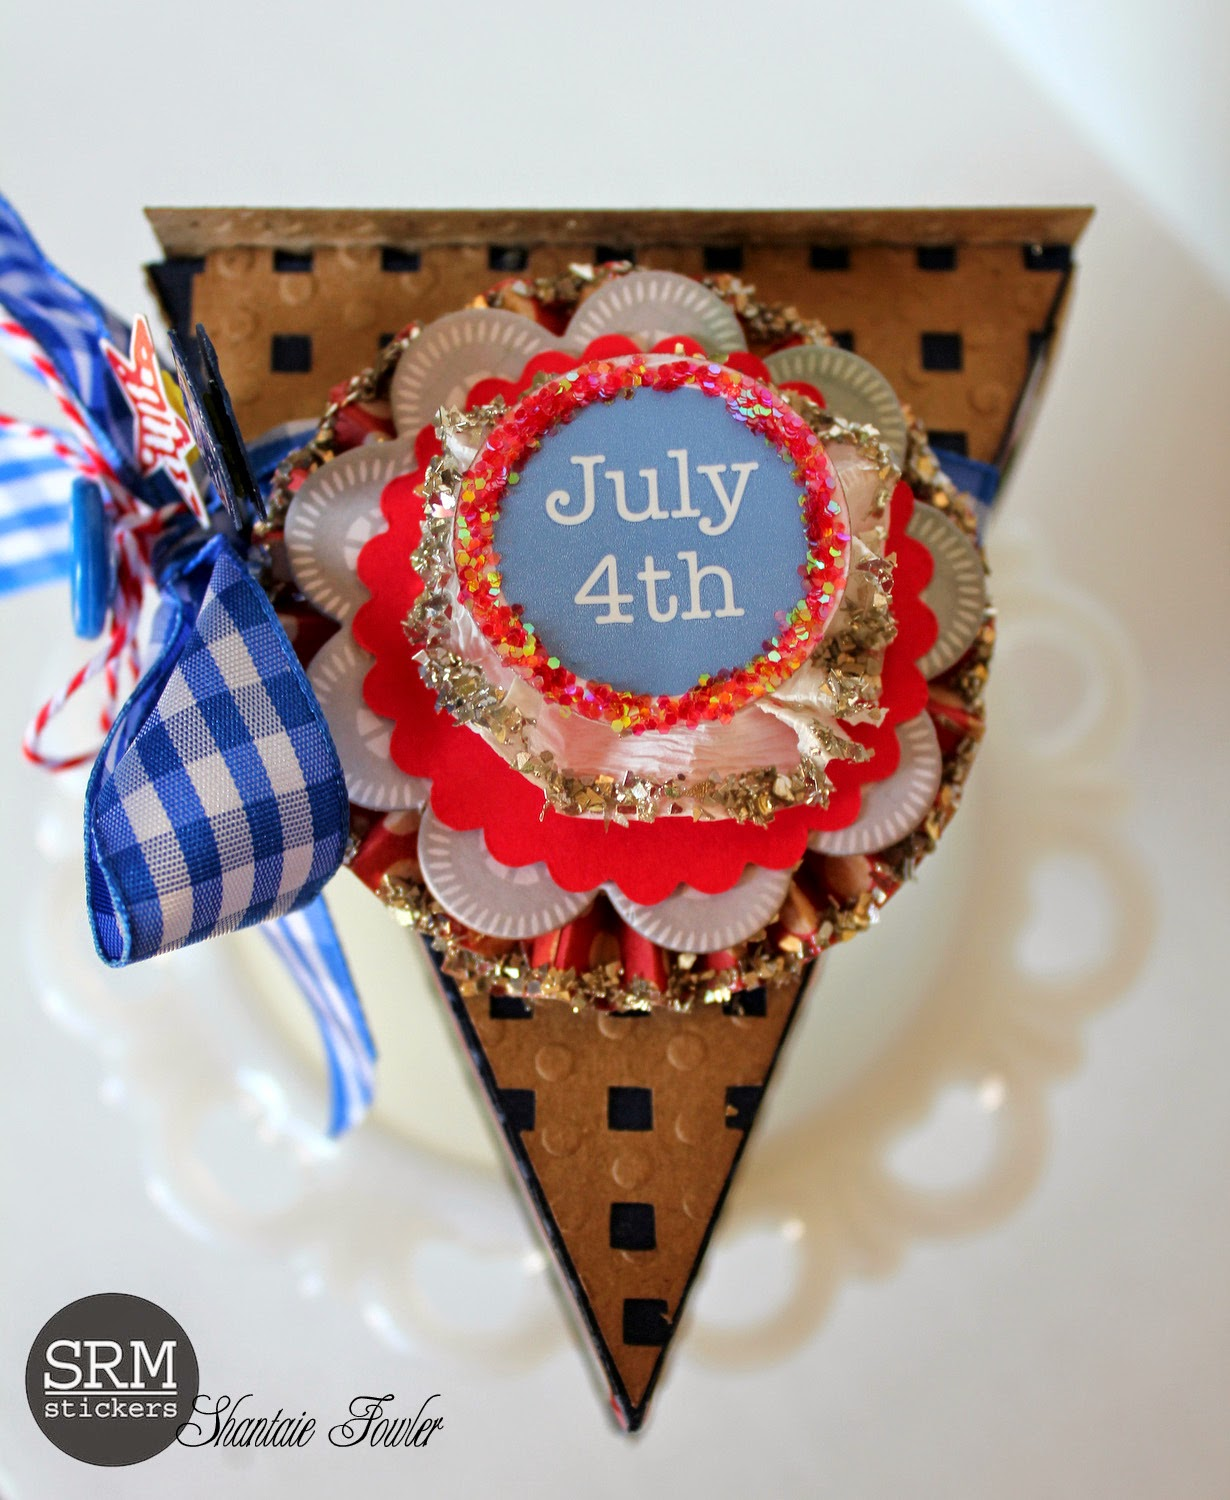 SRM Stickers Blog - Easy as Pie by Shantie - #patriotic #4th of July #altered #gift #stickers #twine #punched pieces